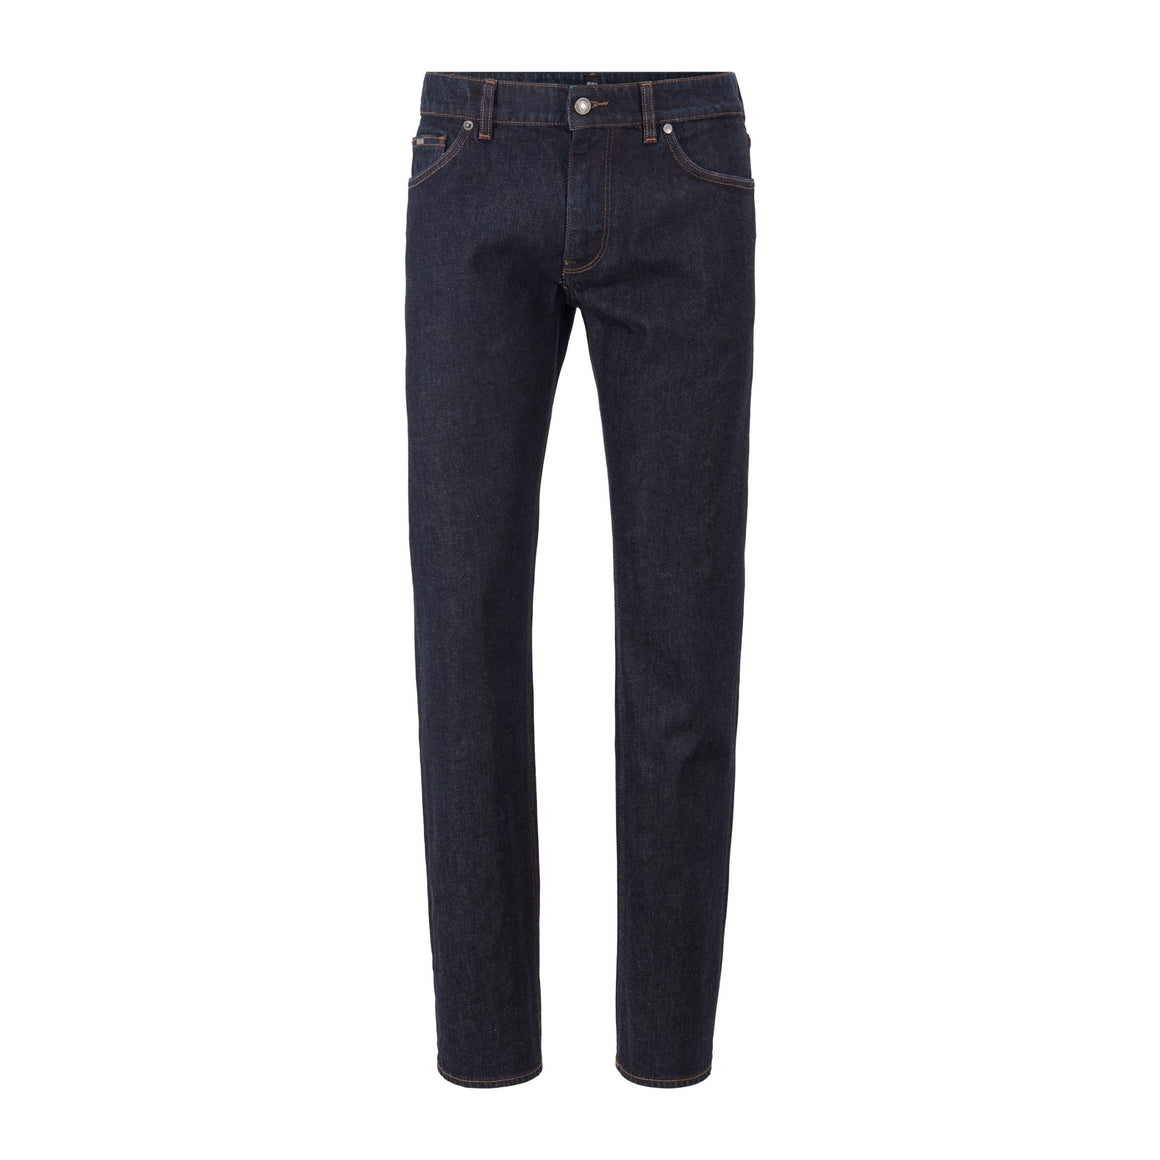 Maine Jeans for Men in Indigo